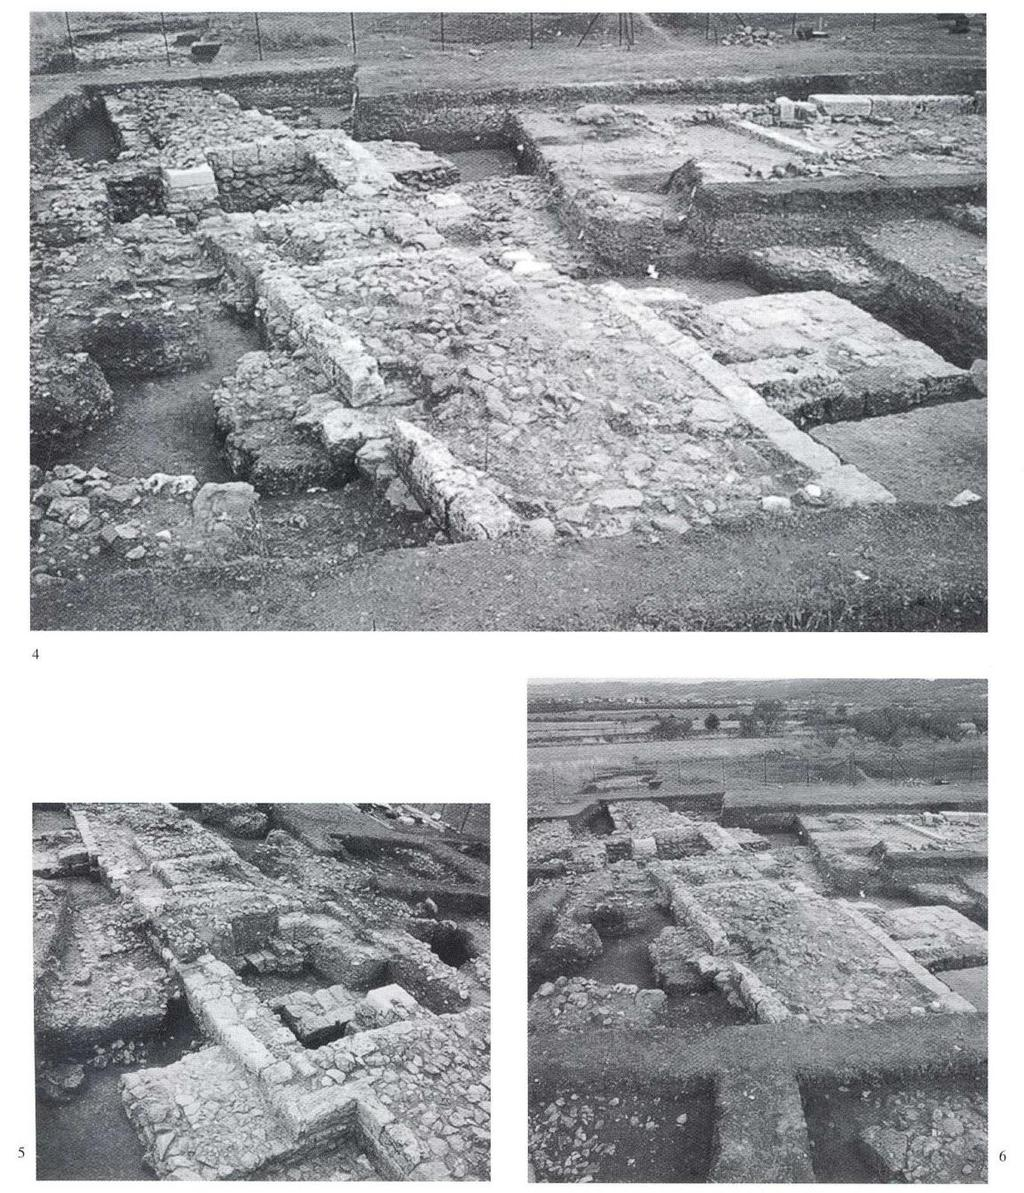 4. The city wall of Aigai in the area of the burial cluster of the Queens (cluster B) seen from the west. The city, the inner tower and the remains of the interior space can be seen. 5.